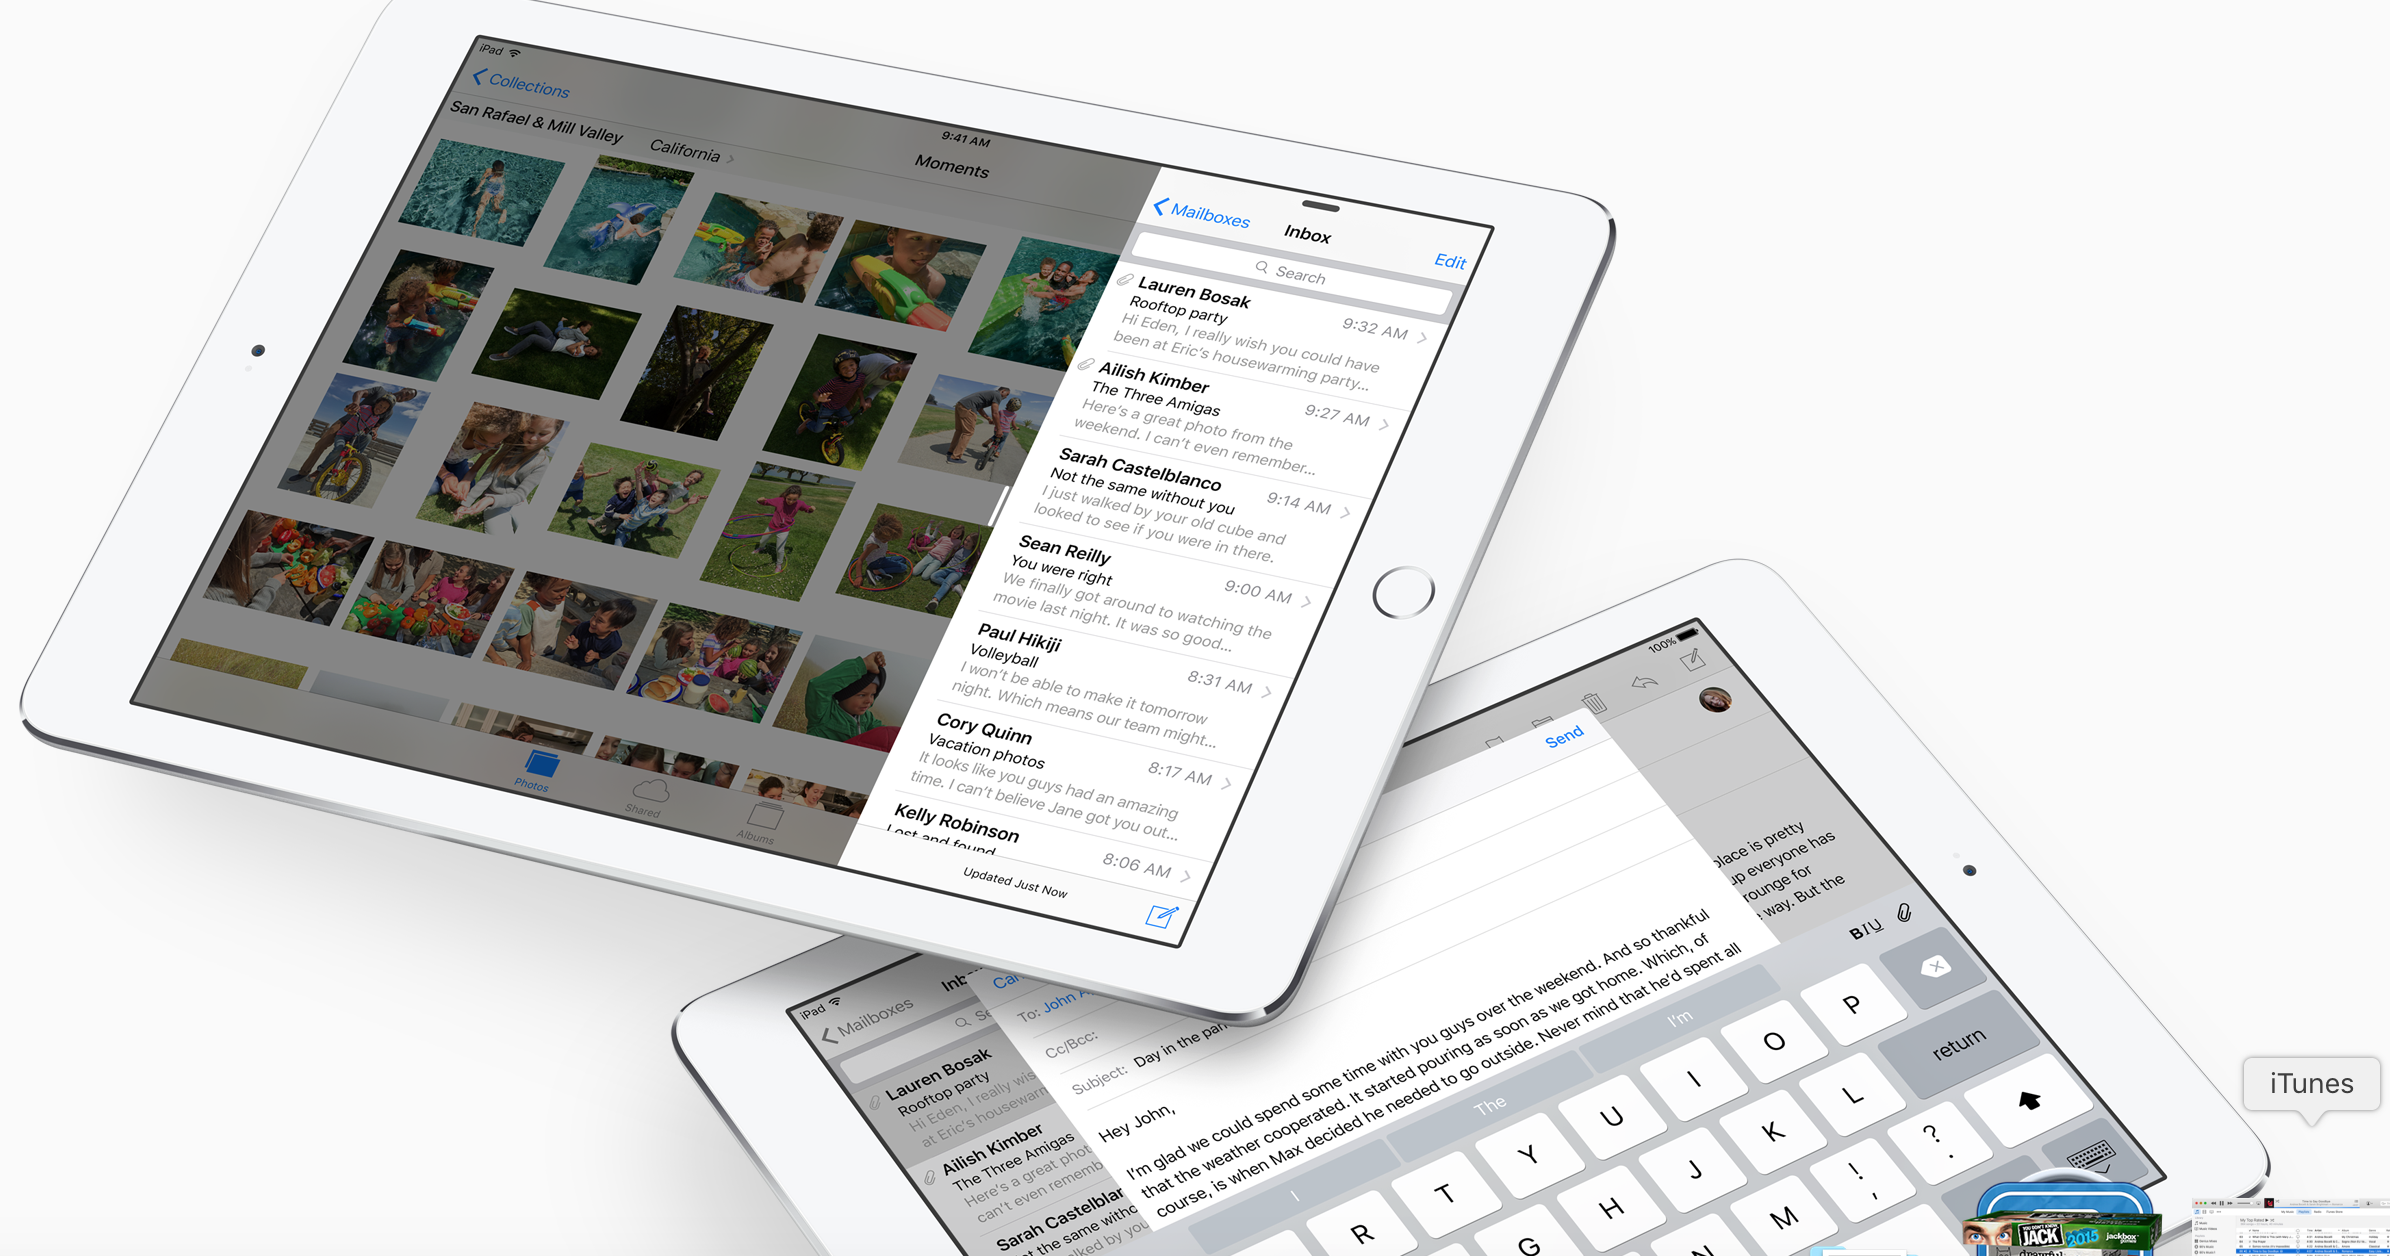 Is it time to upgrade to Apple's iOS 9 or OS X El Capitan?